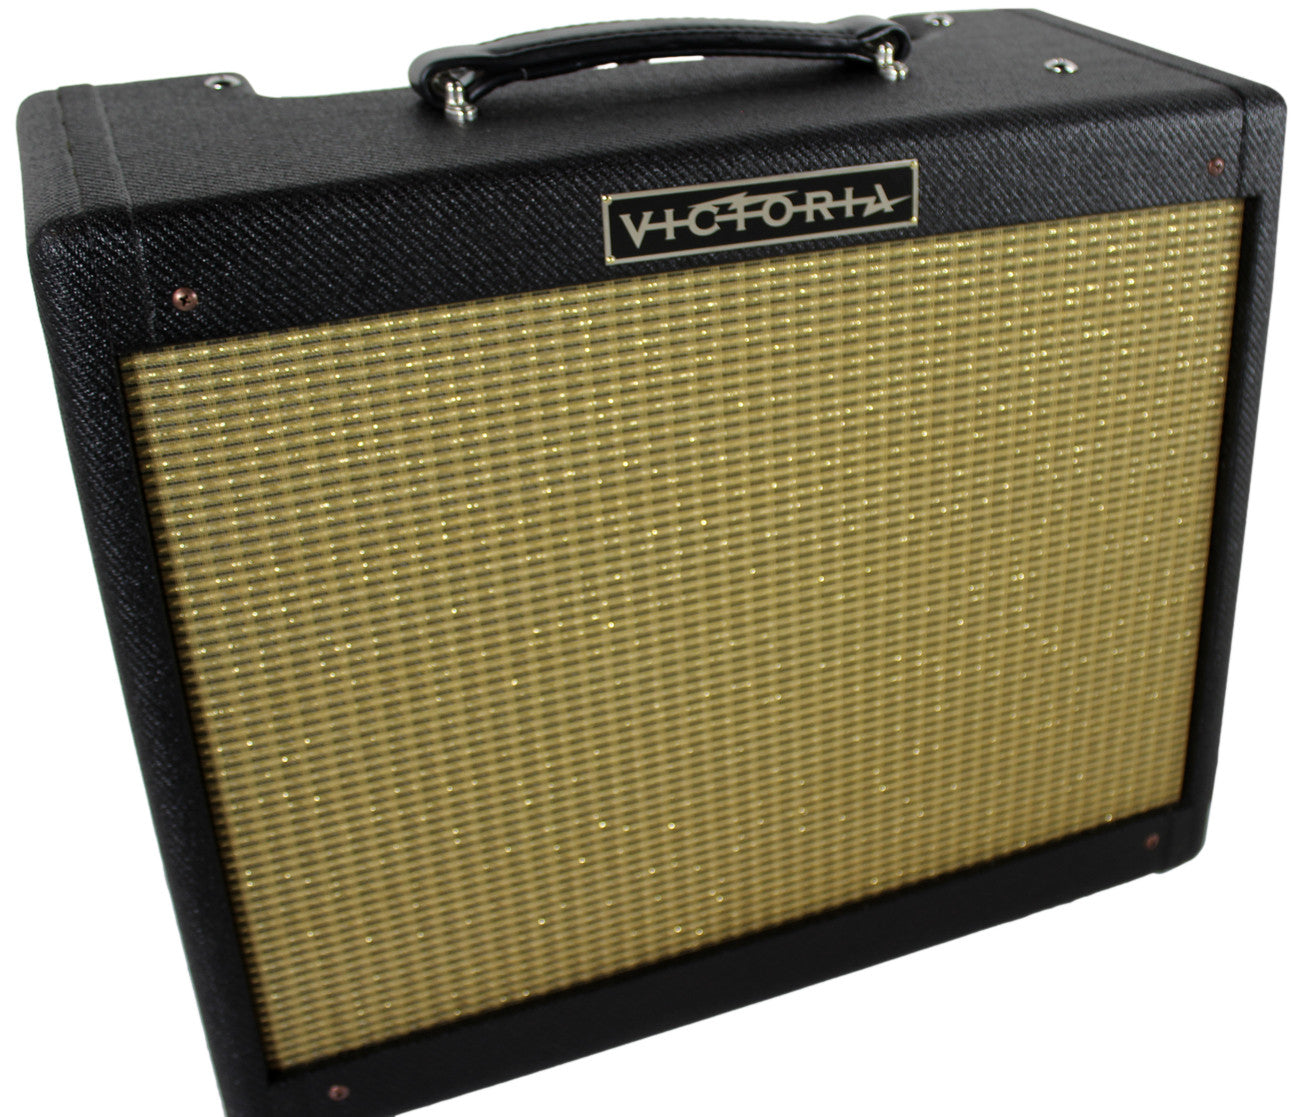 Dating victoria amplifiers for sale